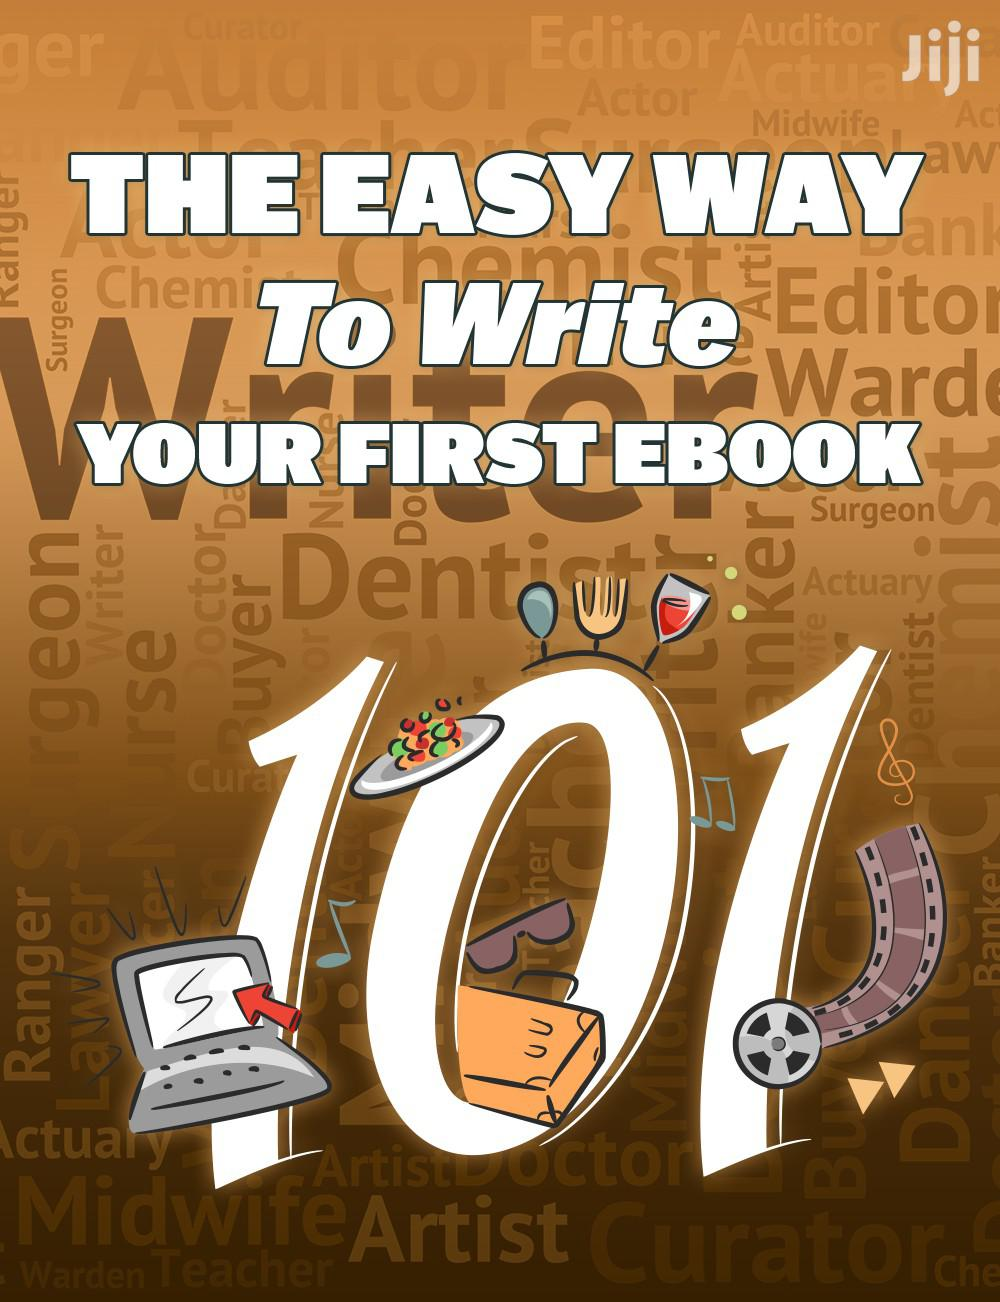 The Easy Way to Write Your First Ebook 101